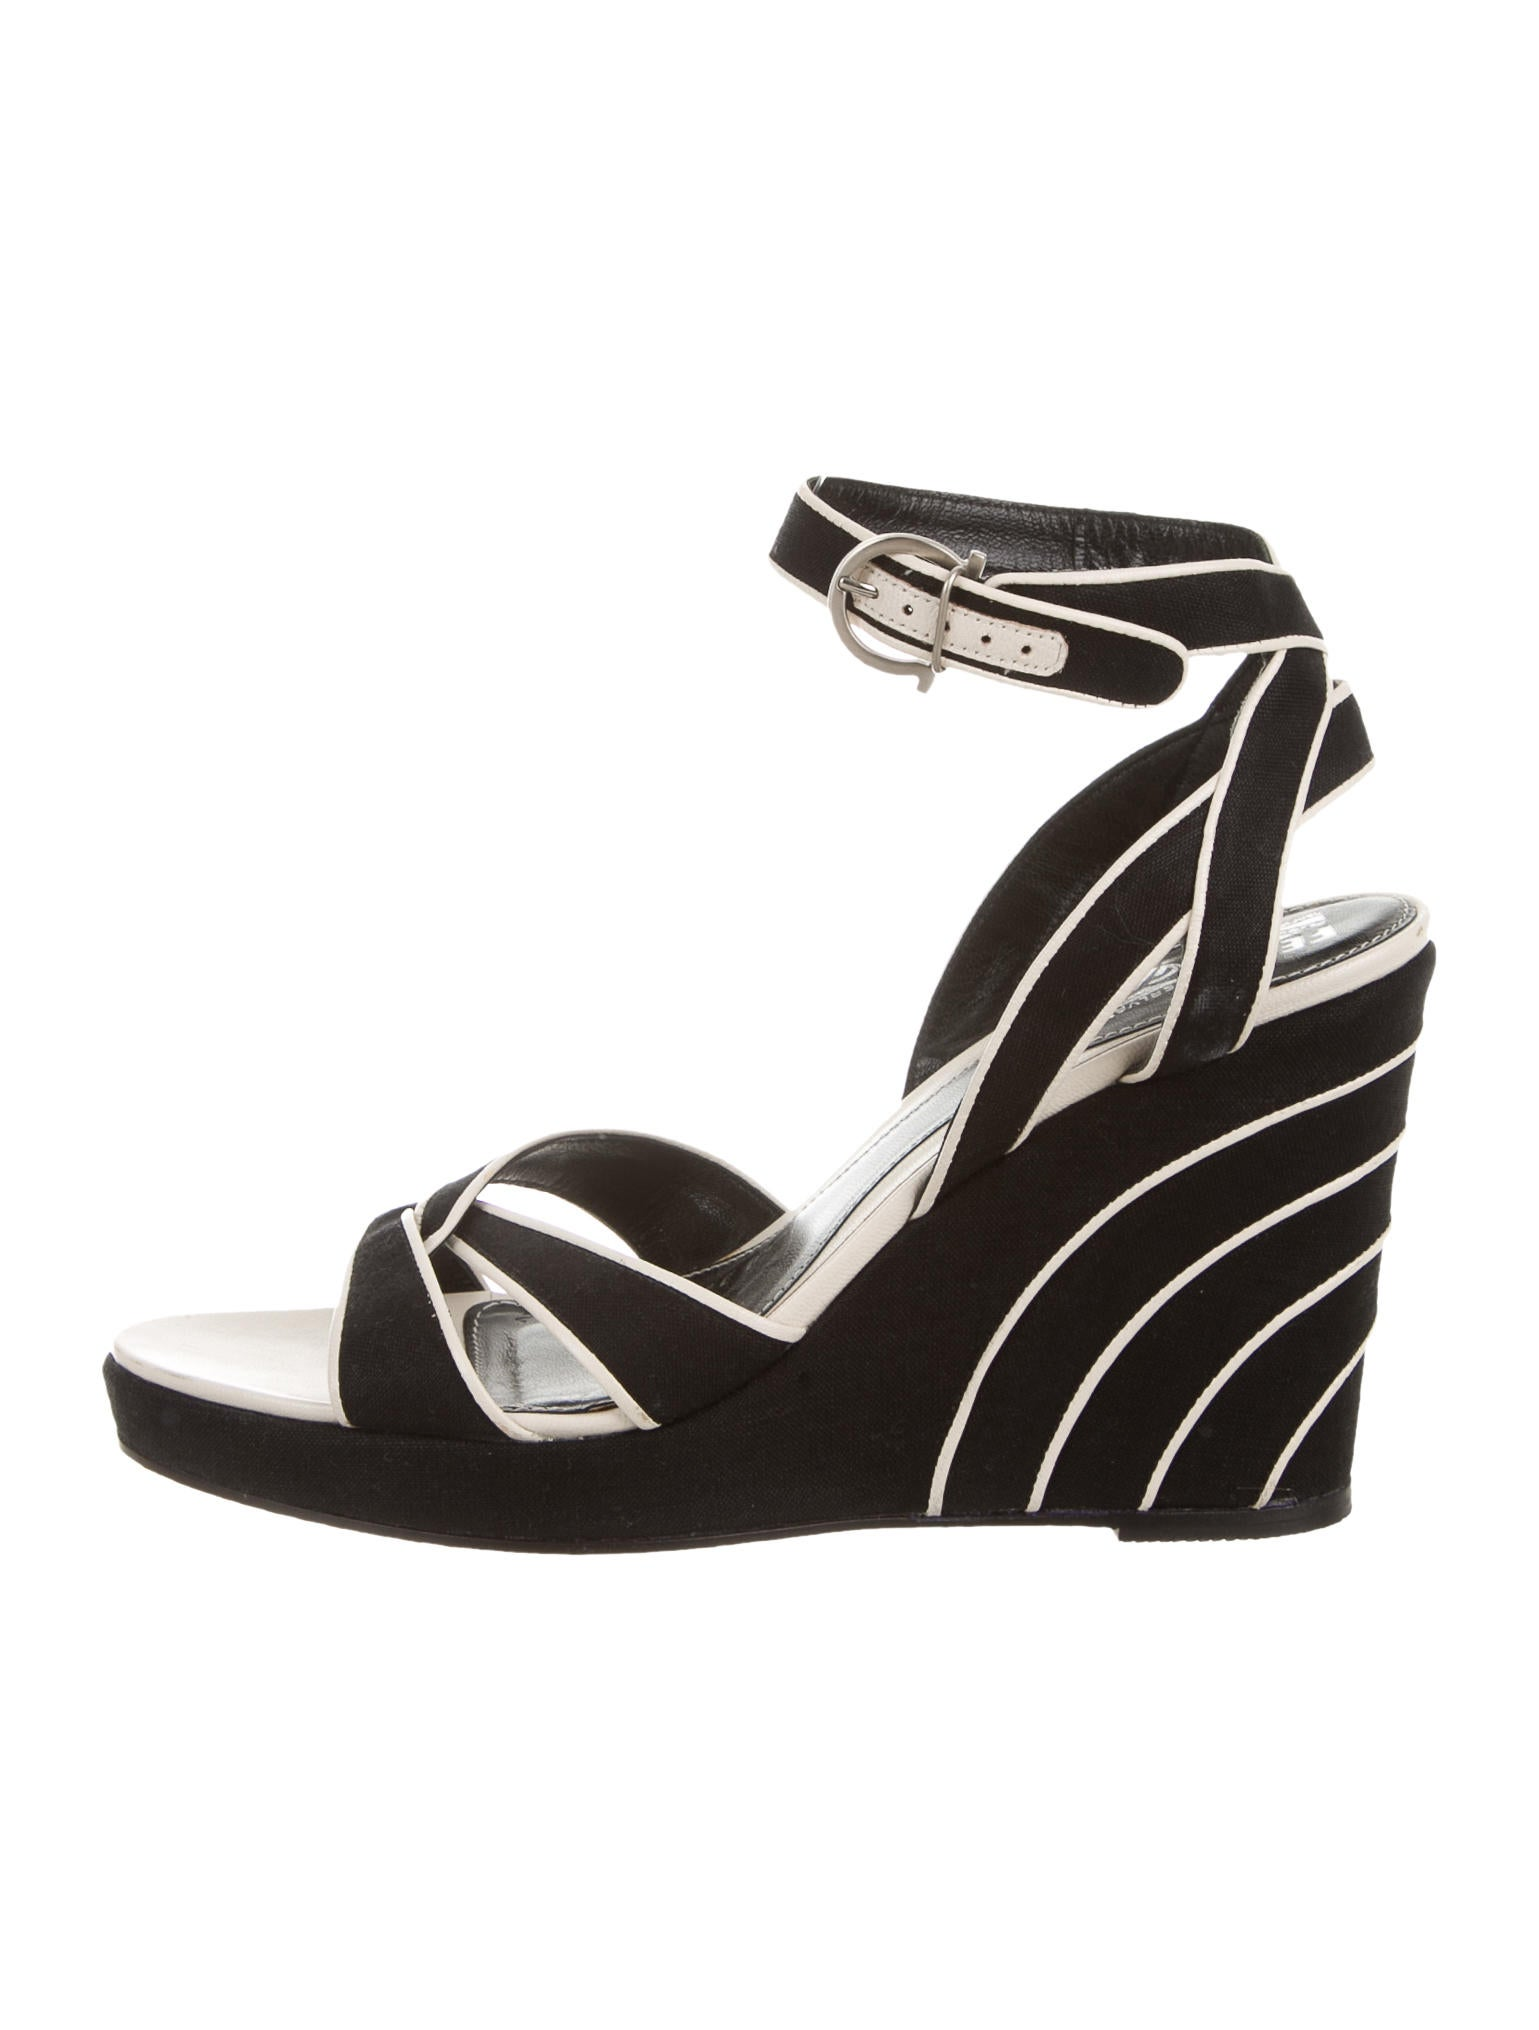 salvatore ferragamo strappy wedge sandals shoes